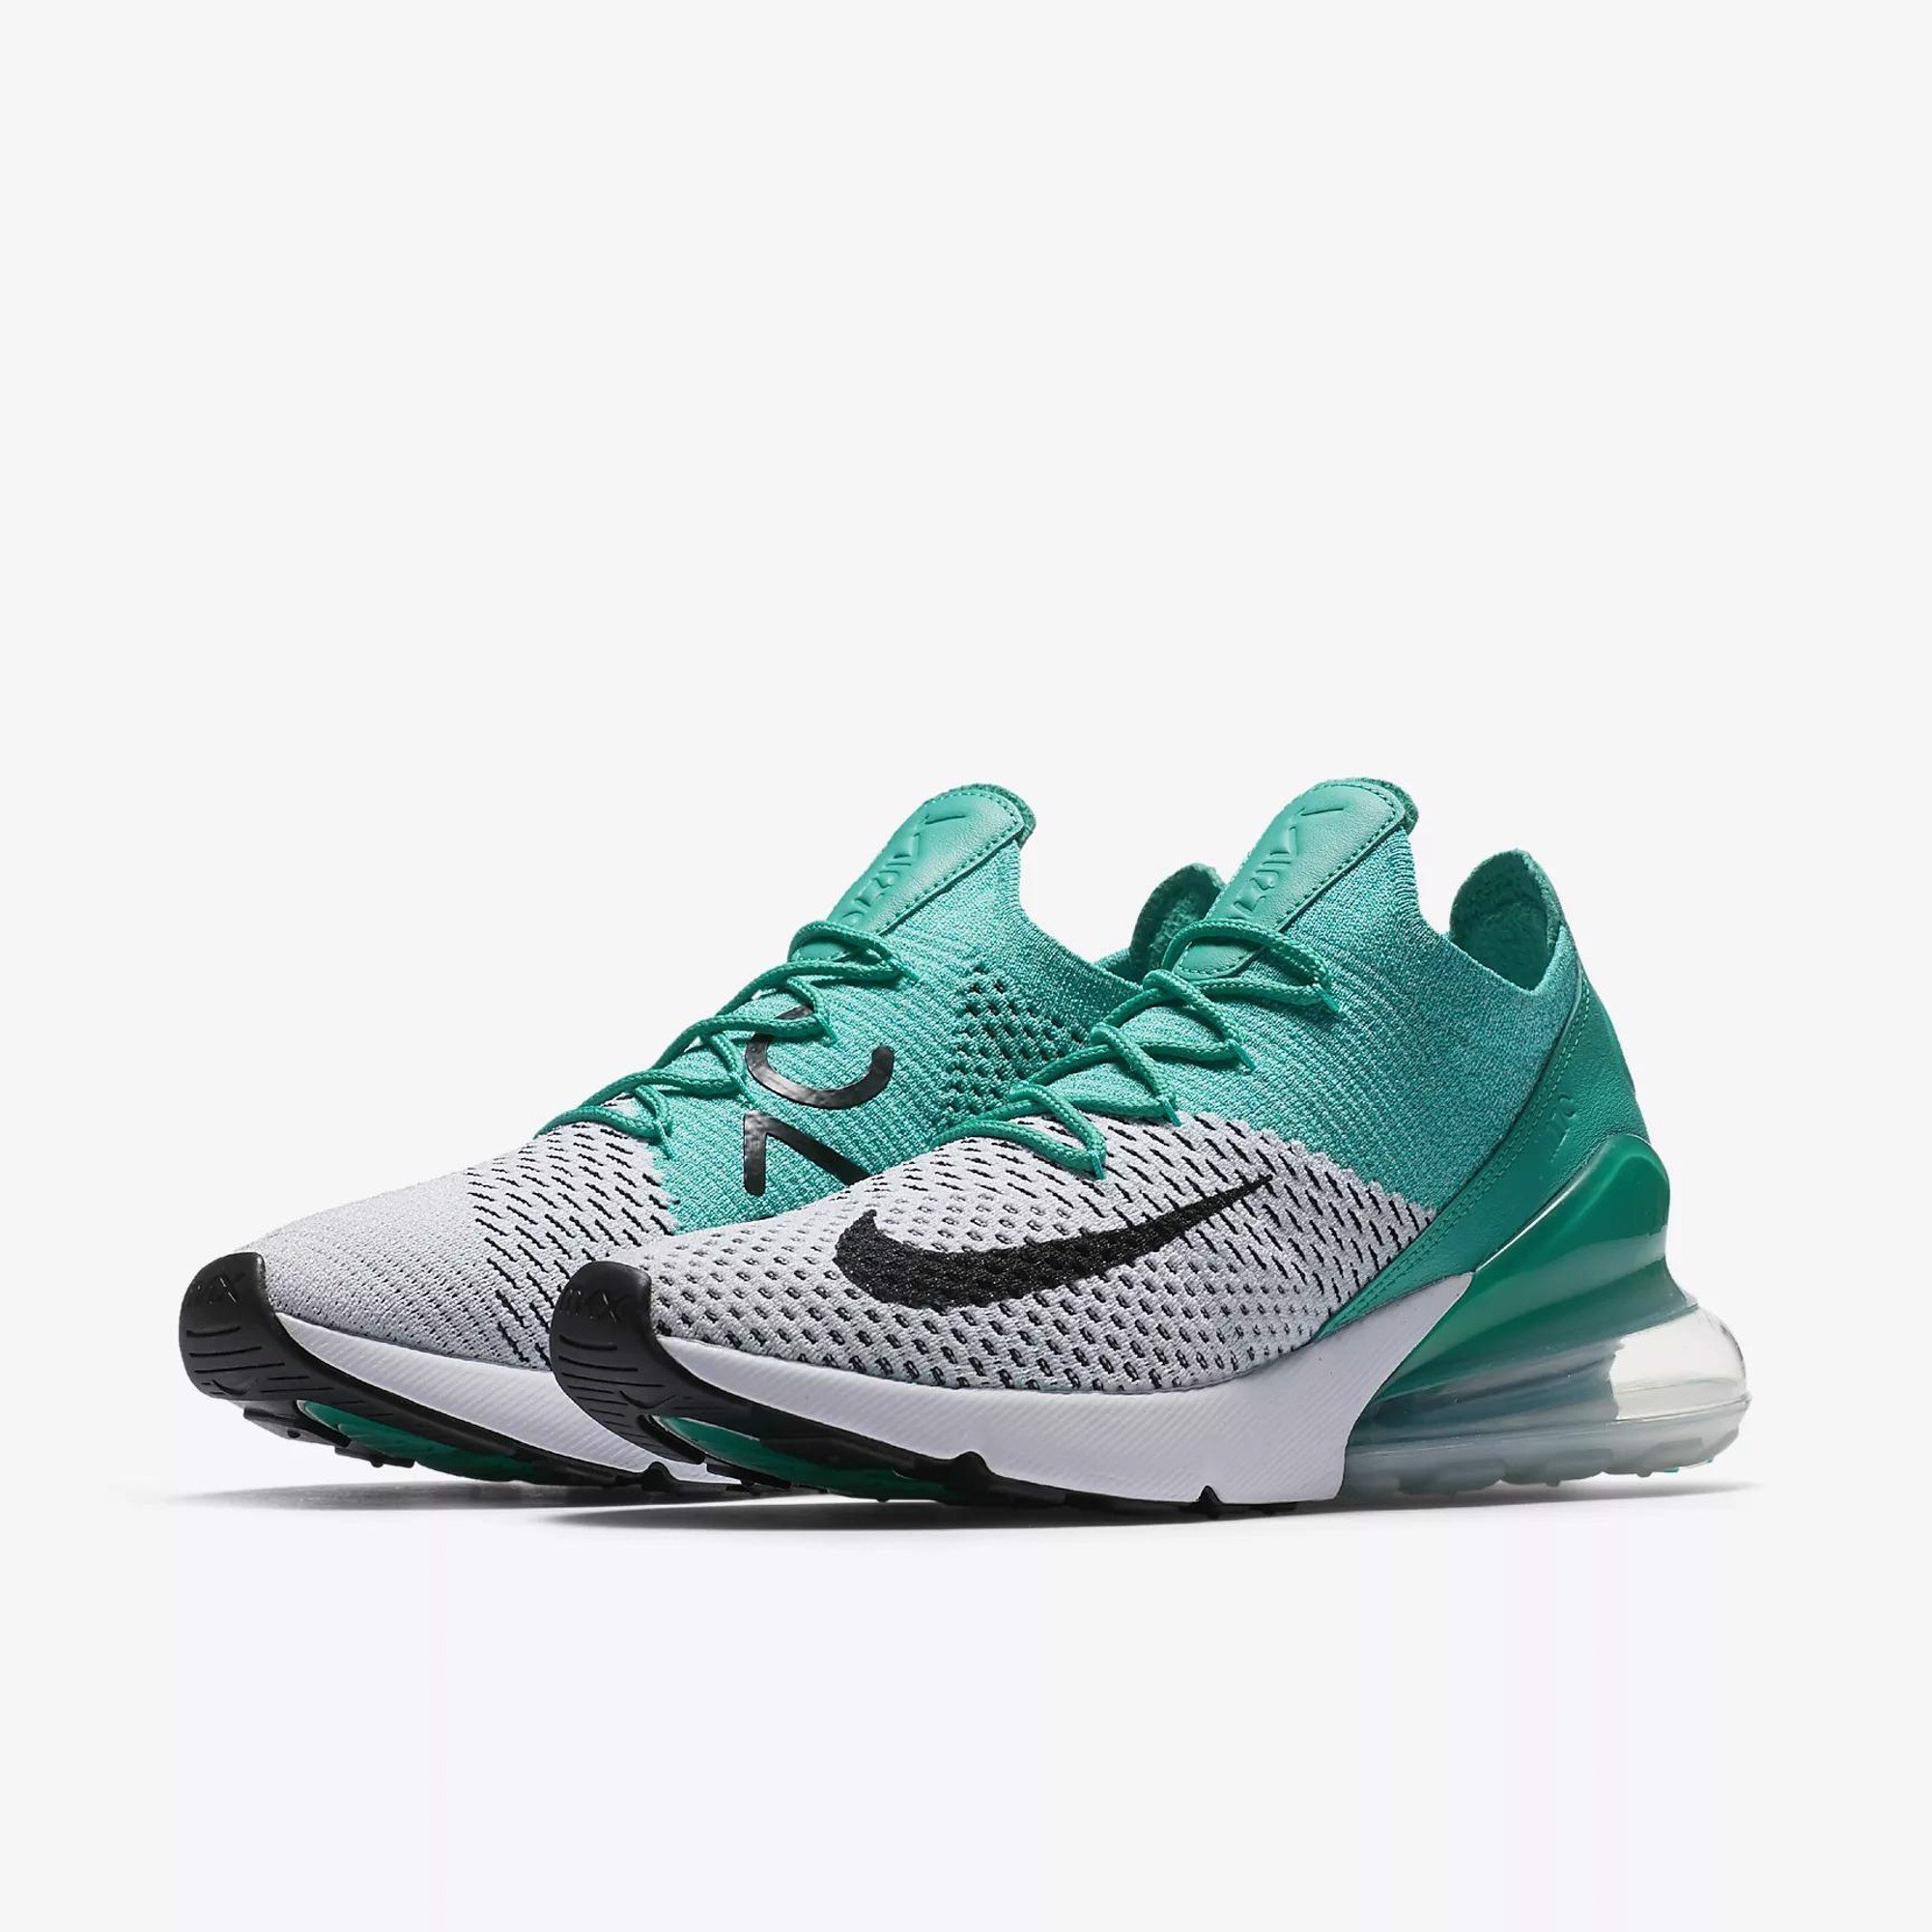 Nike Air Max 270 Flyknit - Clear Emerald